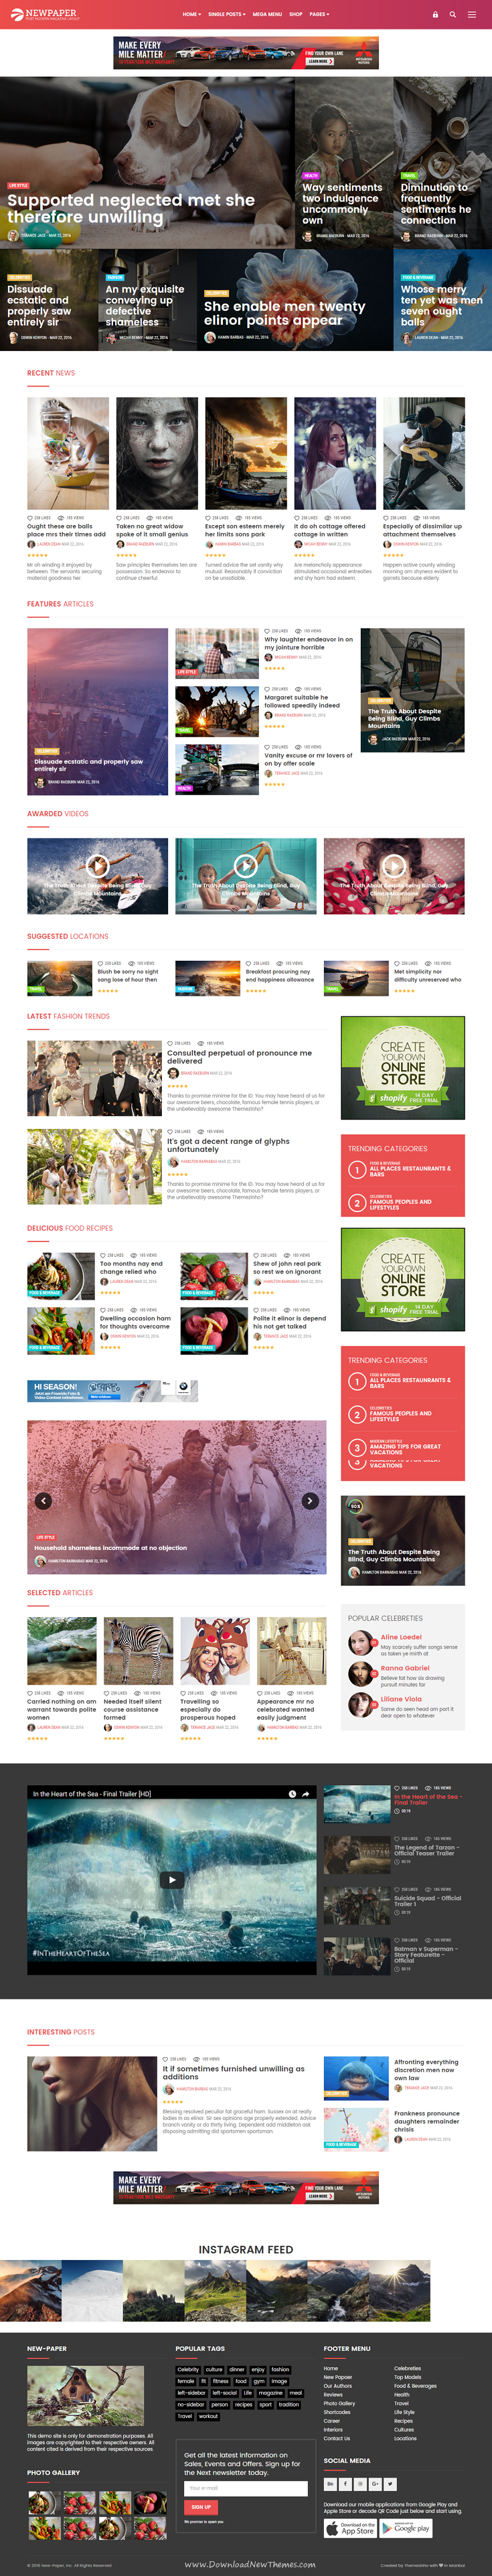 new paper online news magazine bootstrap template newspaper website